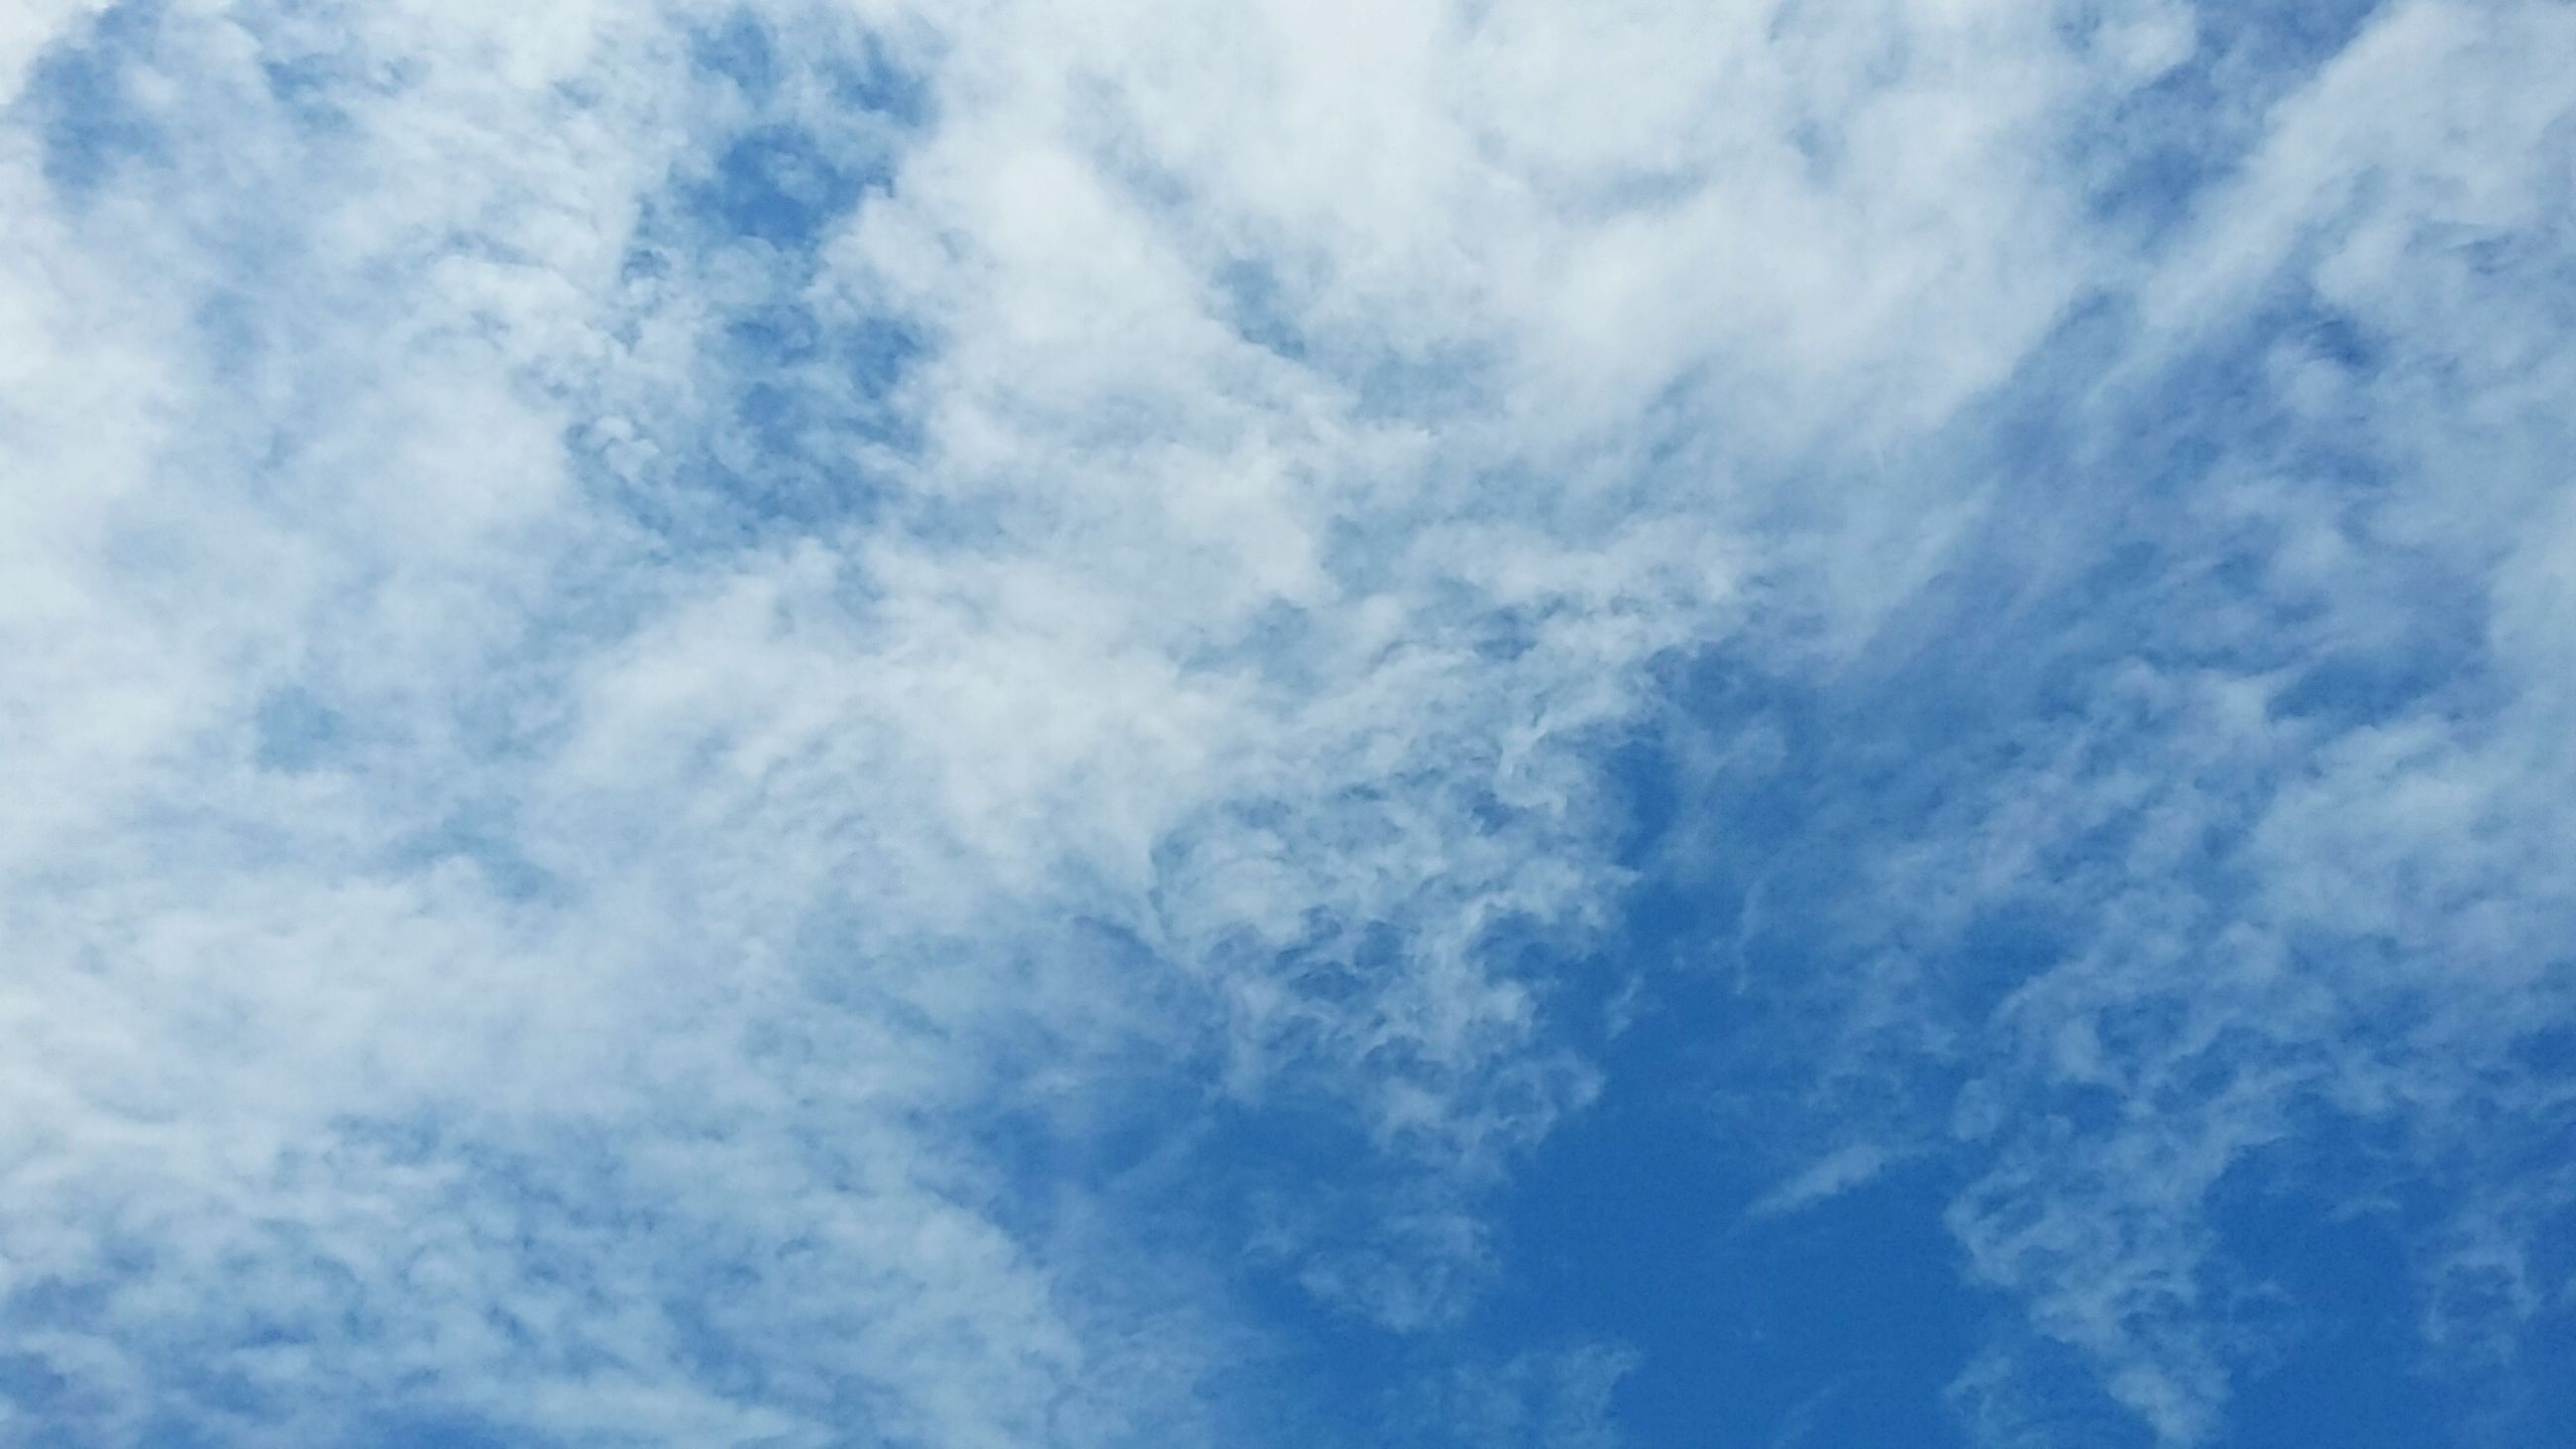 sky, low angle view, cloud - sky, backgrounds, sky only, beauty in nature, full frame, tranquility, blue, scenics, cloudy, nature, tranquil scene, cloudscape, cloud, idyllic, white color, day, outdoors, no people